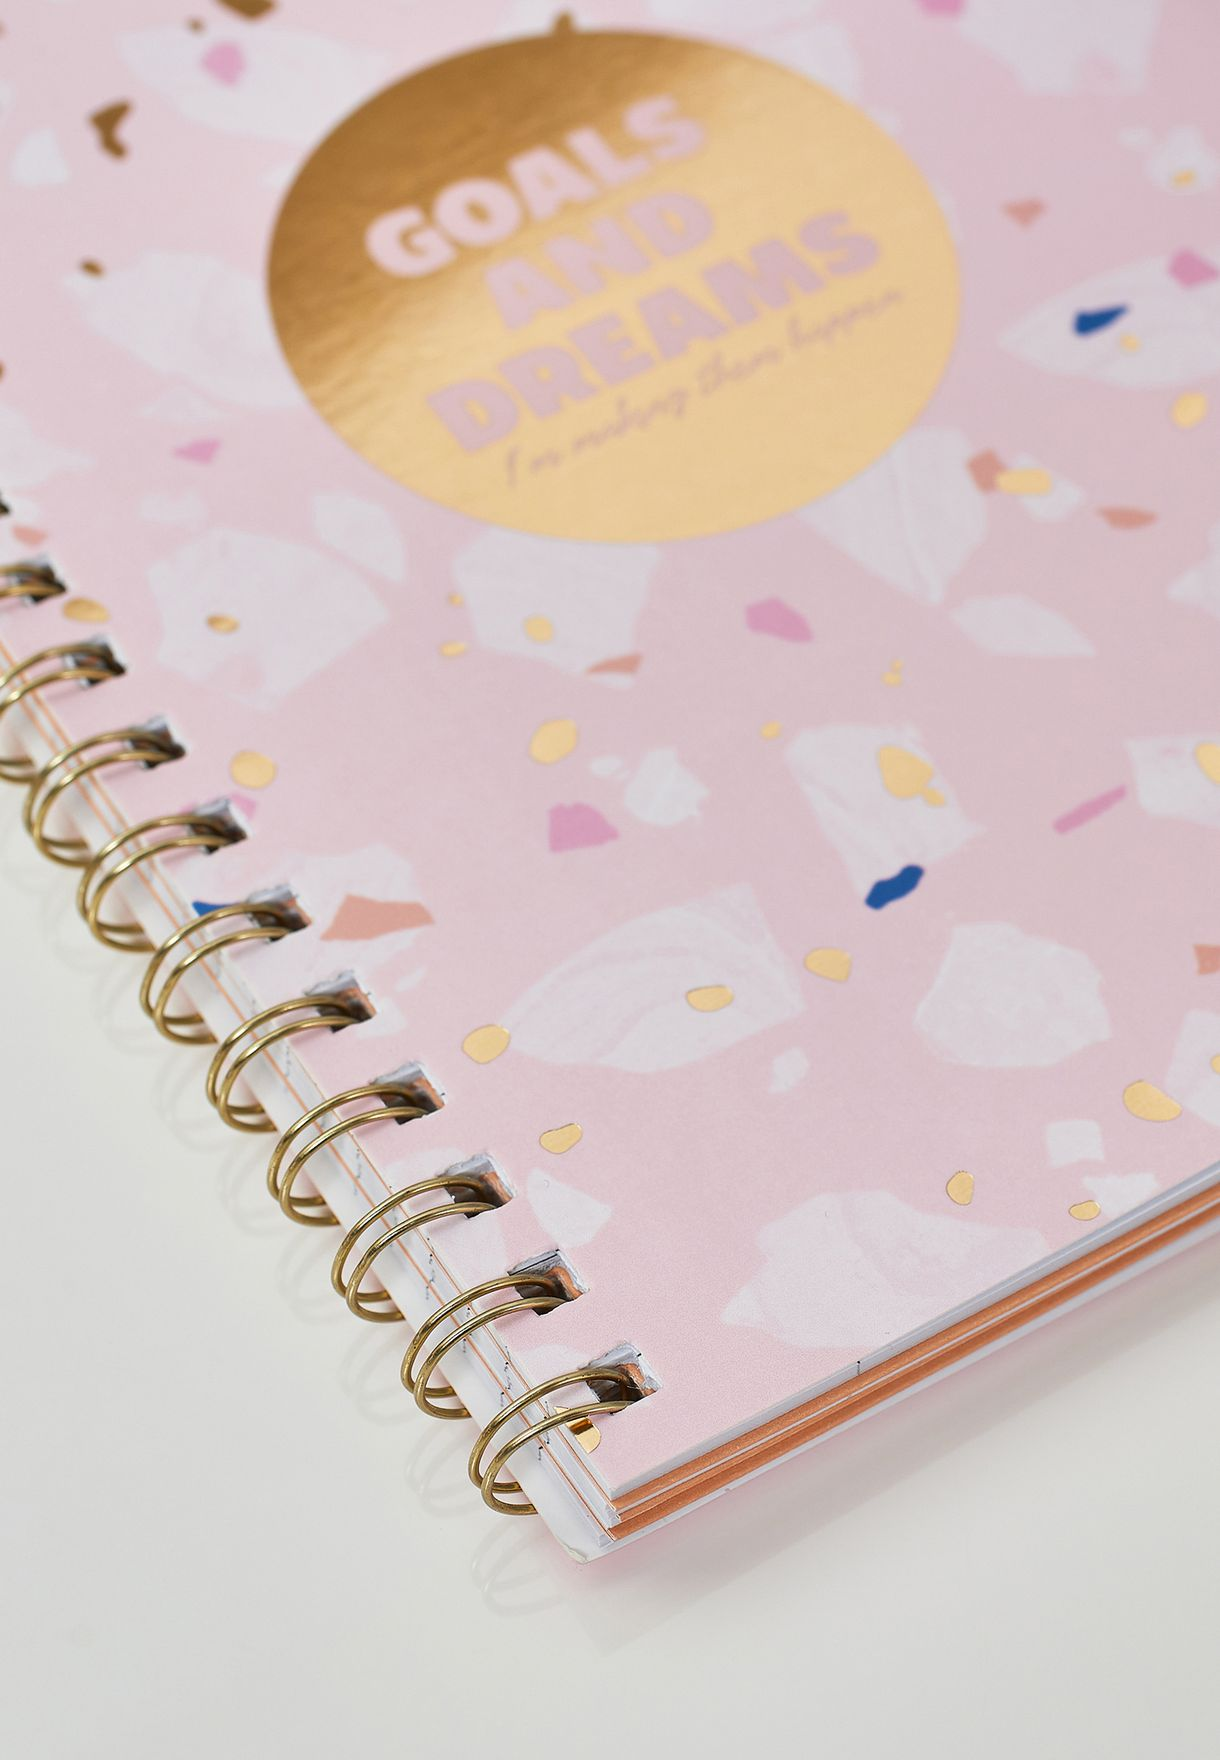 Goals And Dreams A5 Notebook